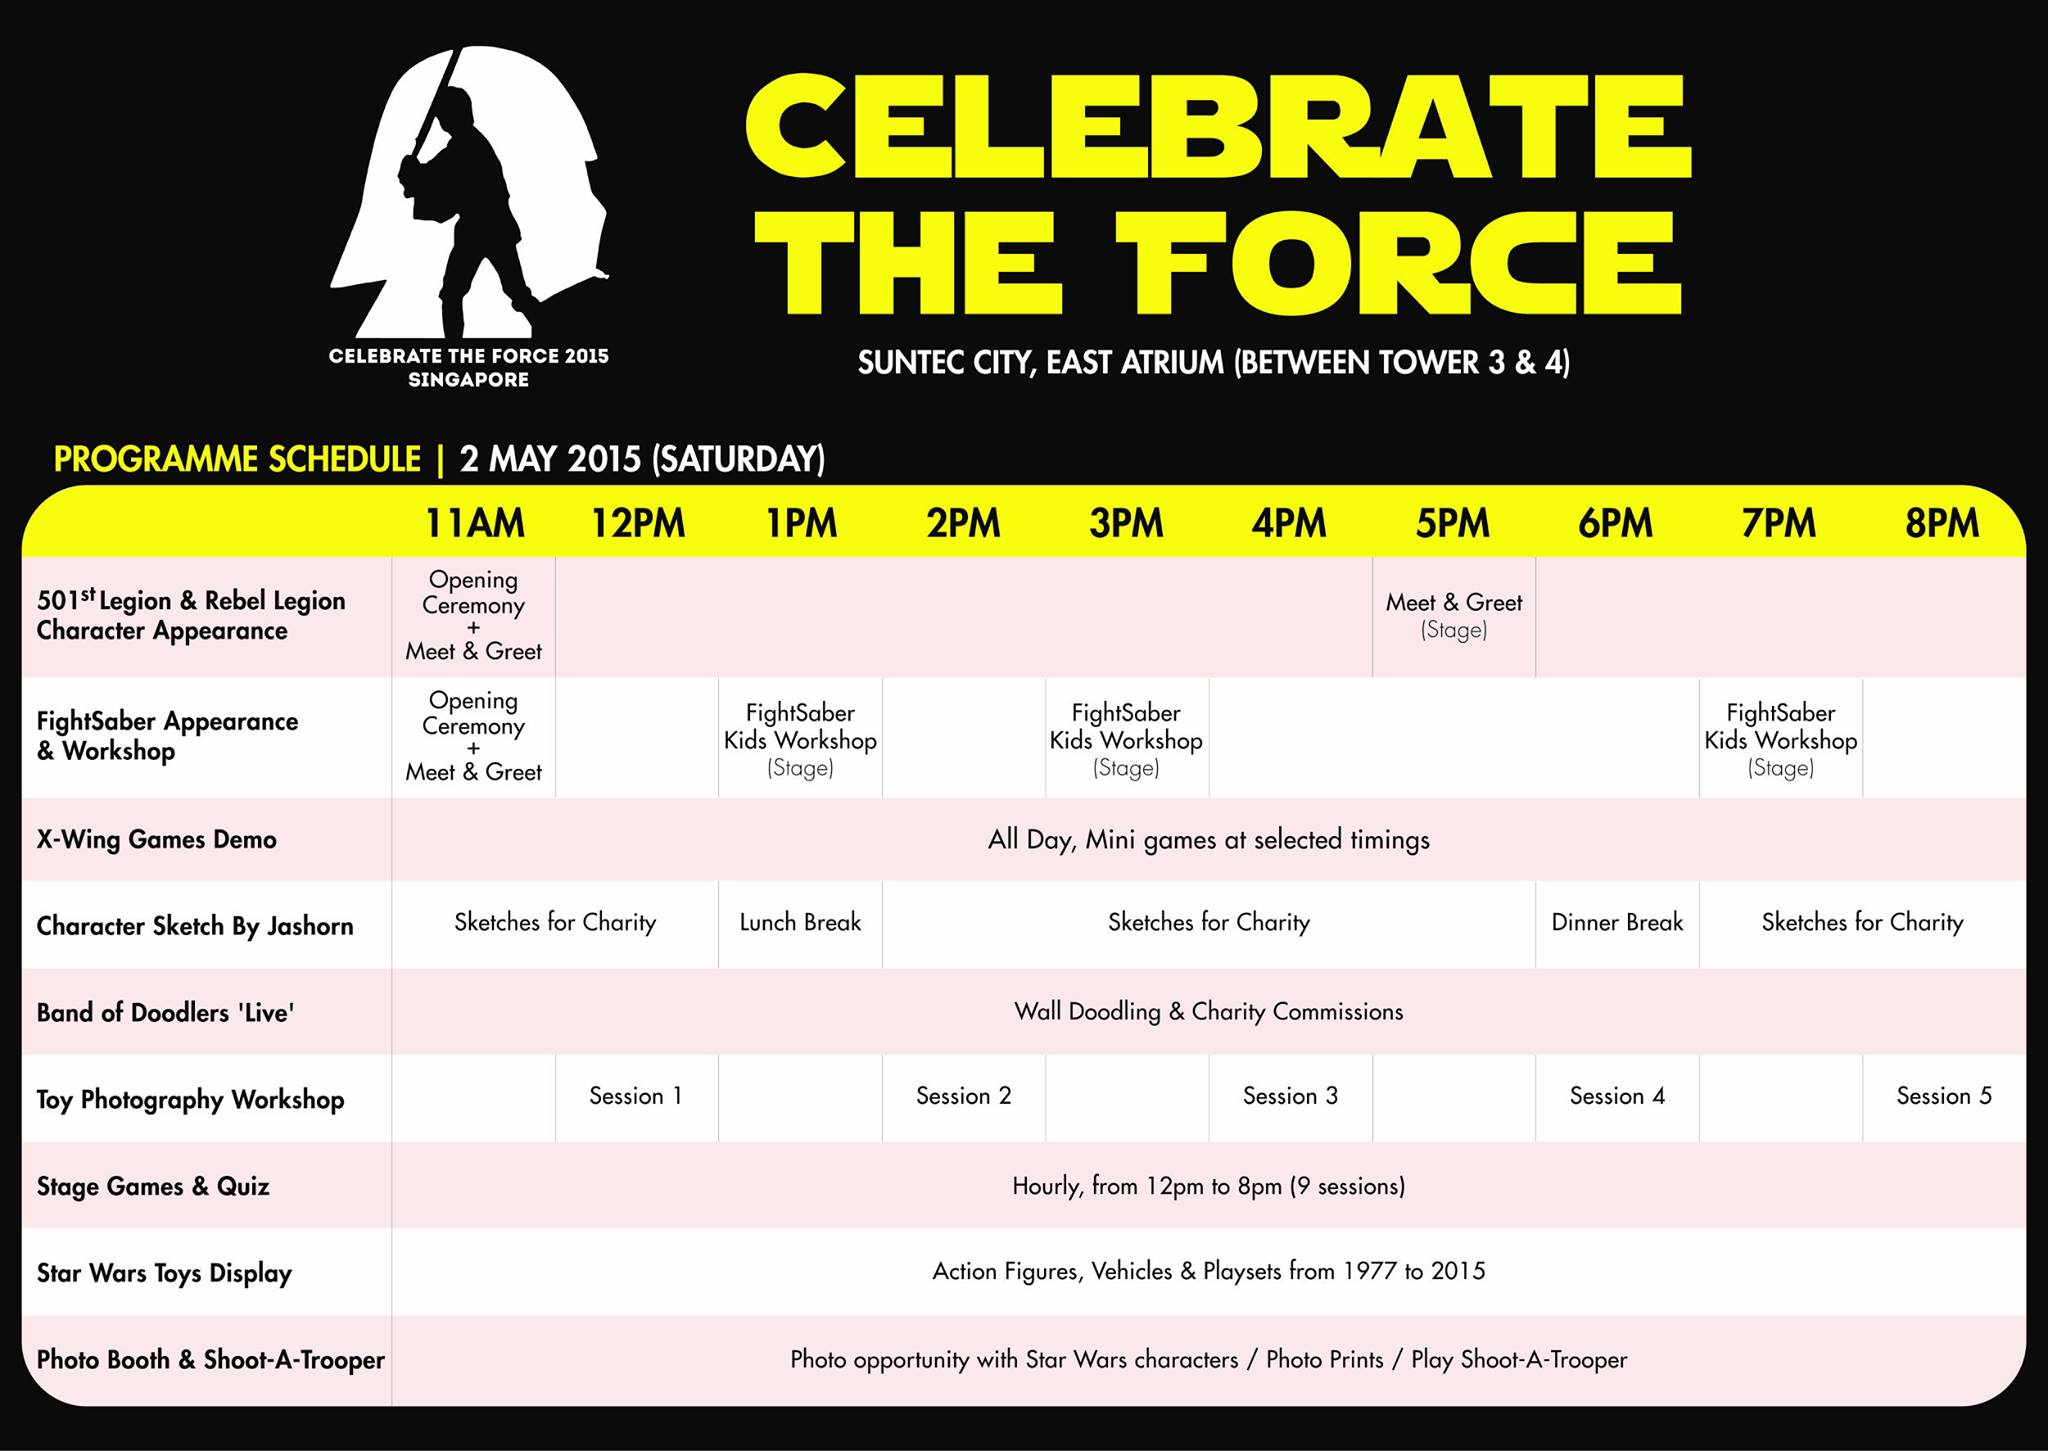 Celebrate the Force May the 4th 2015 Singapore Day 1 May 2